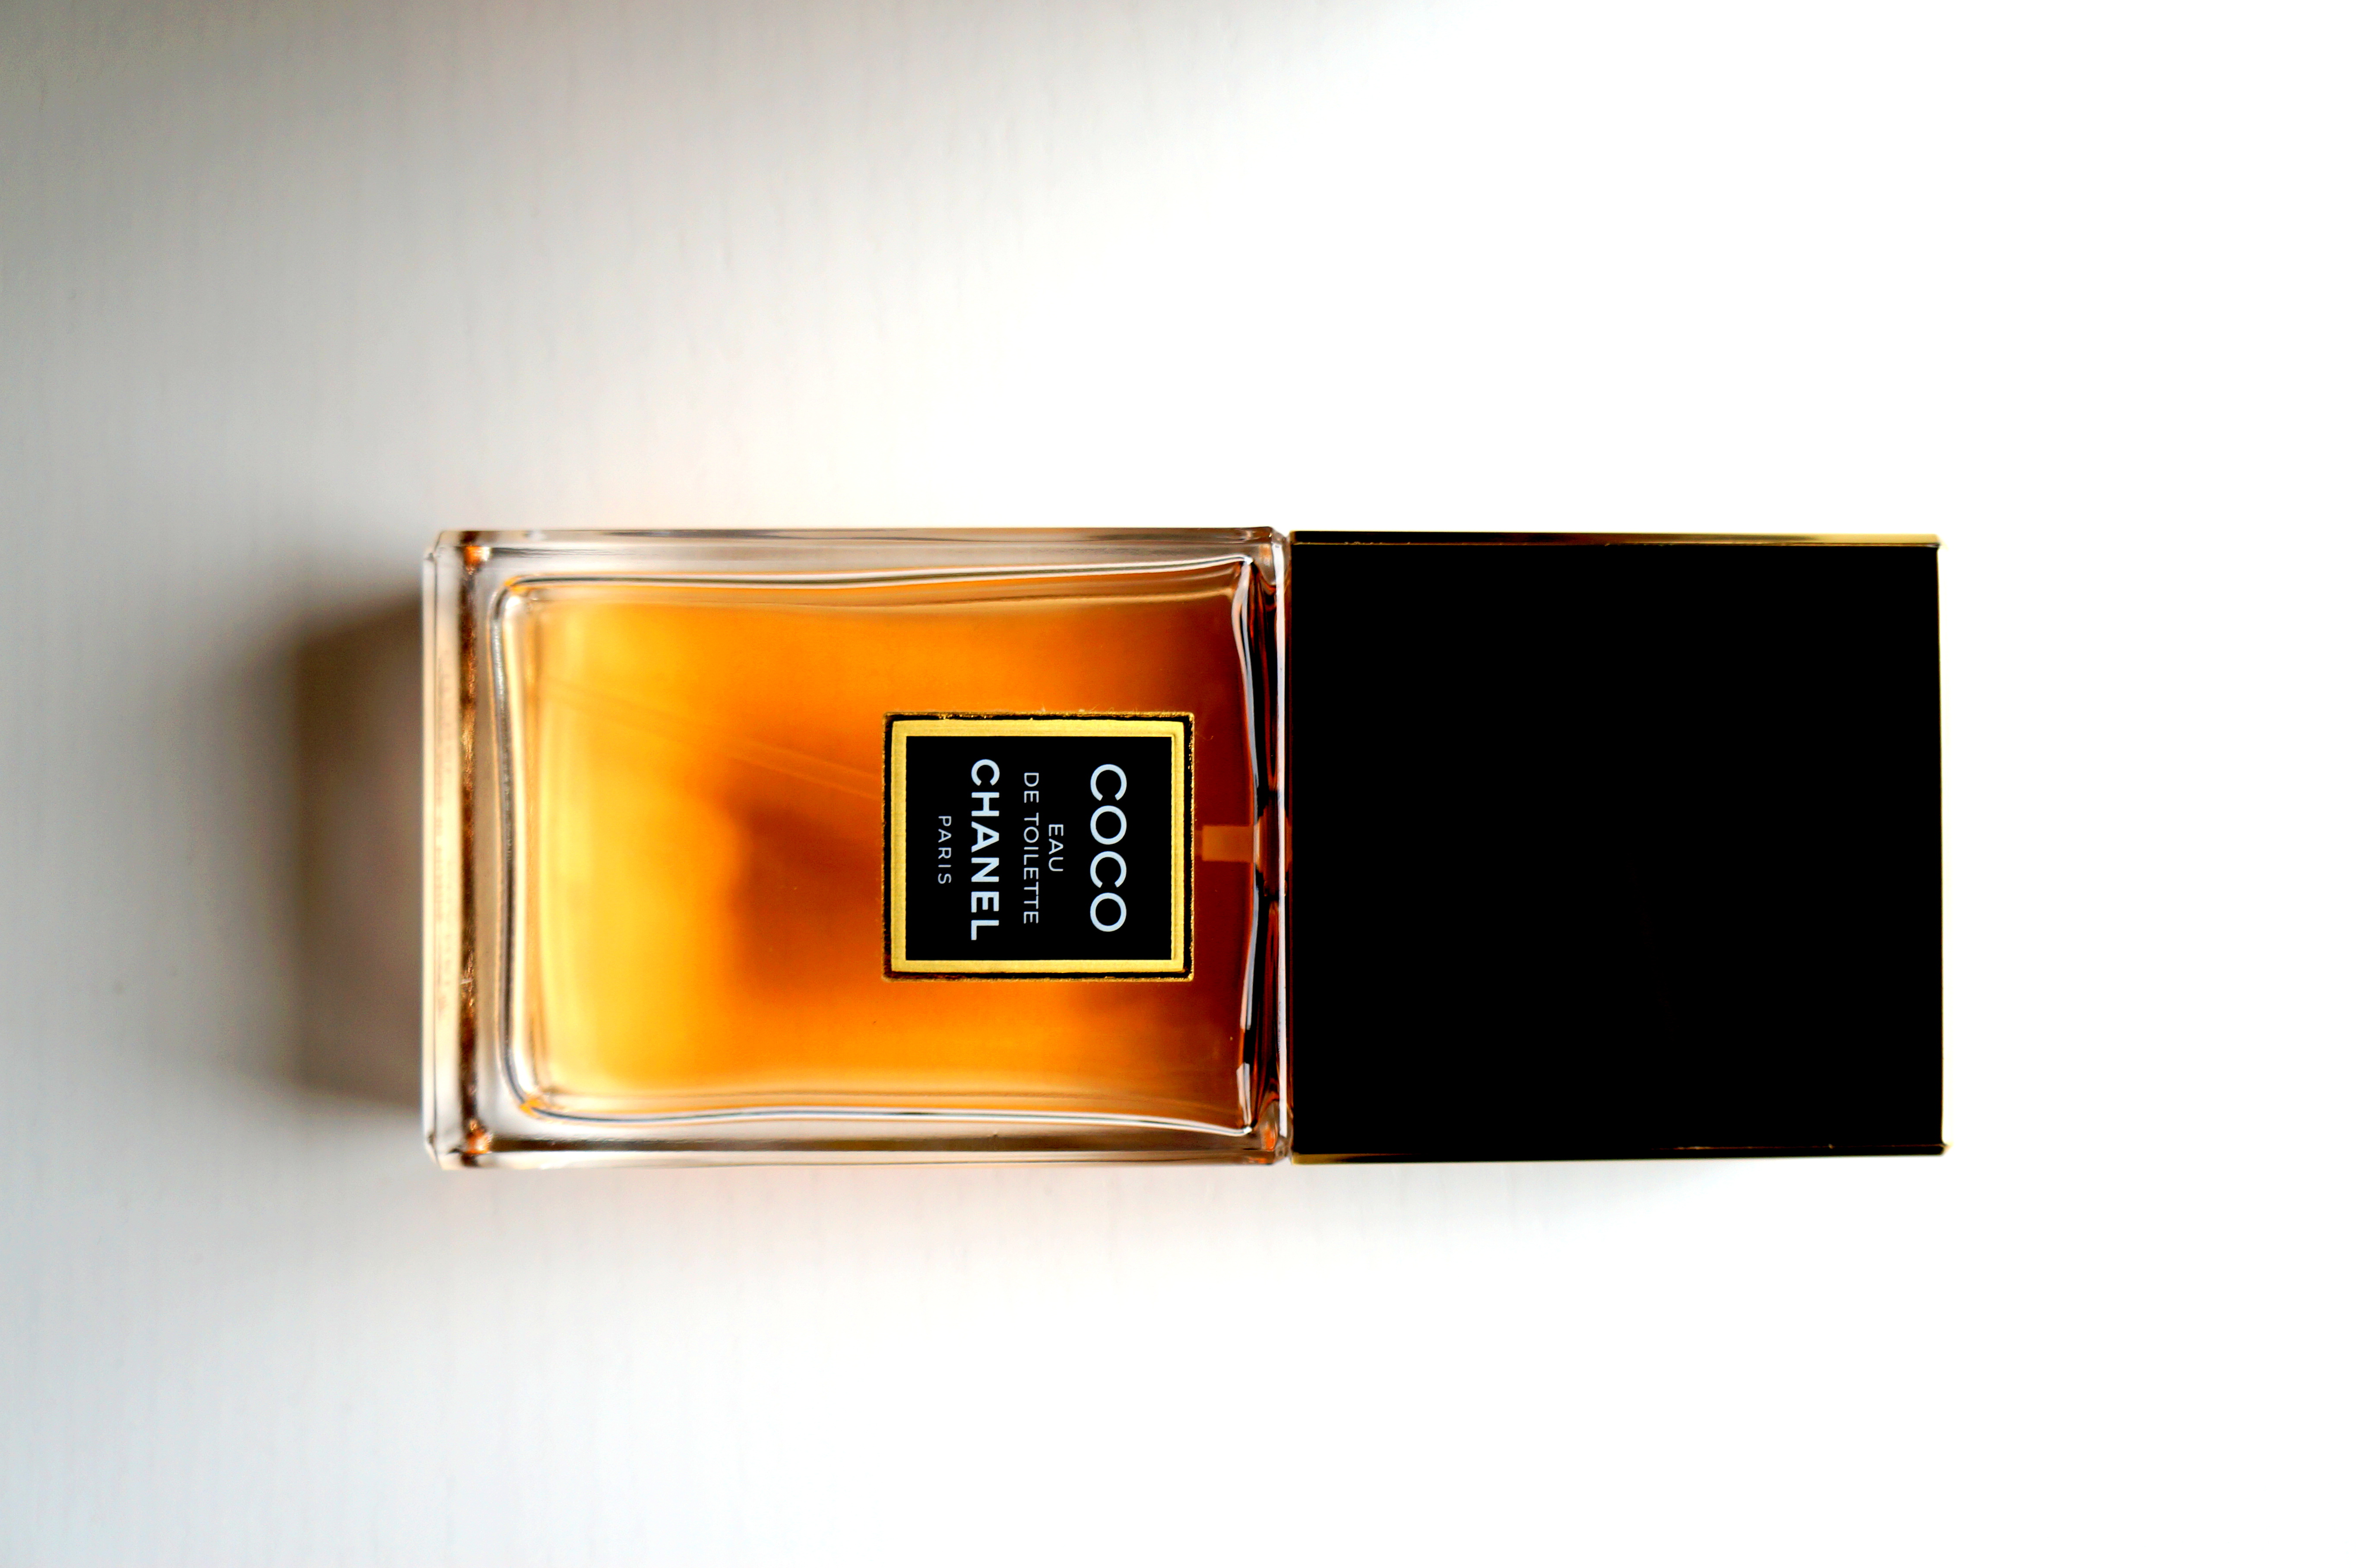 Coco-chanel edt 01